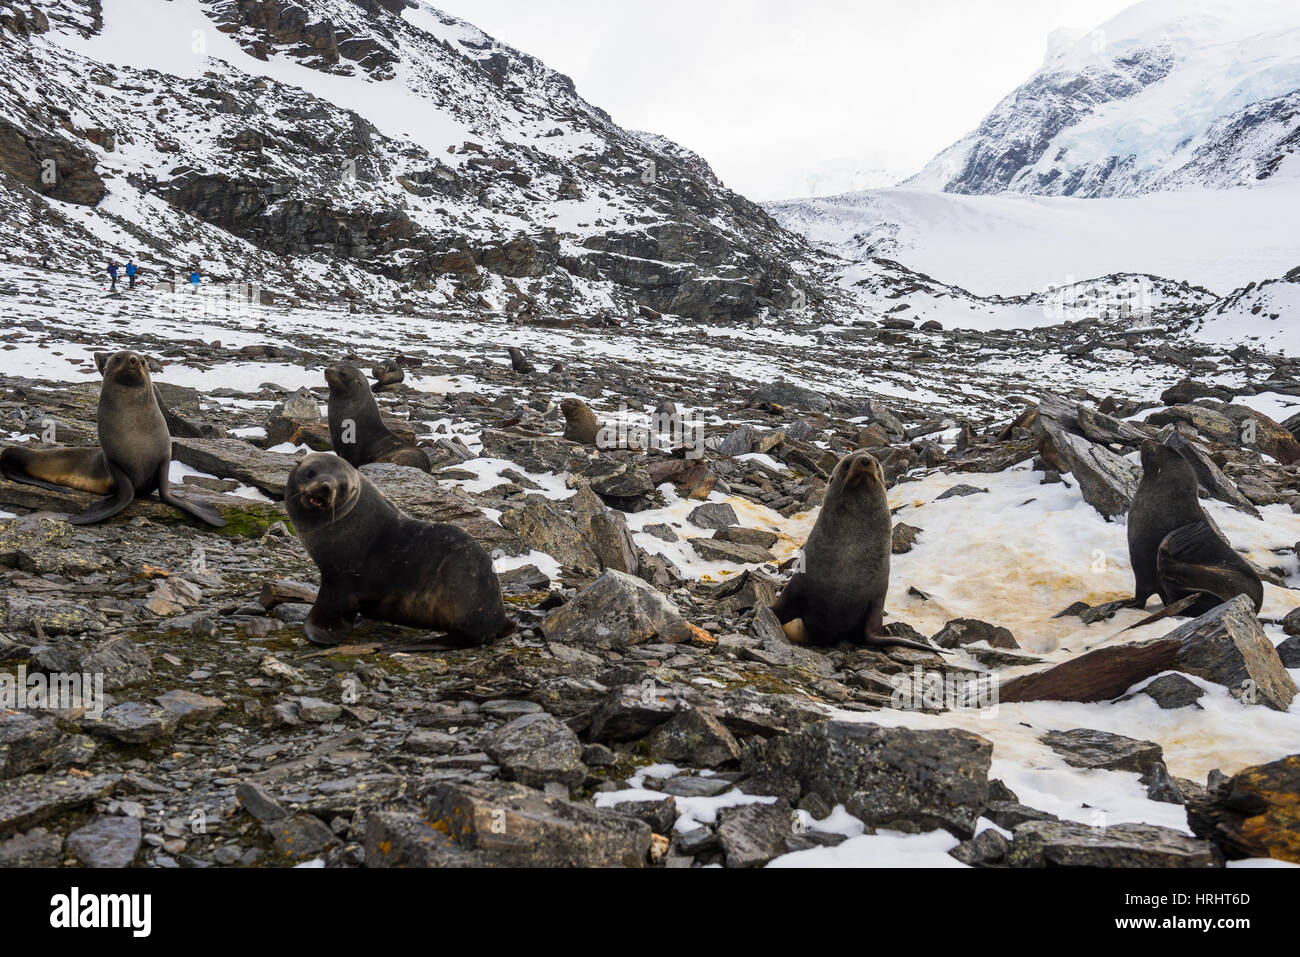 Antarctic fur seal (Arctocephalus gazella) colony, Coronation Island, South Orkney Islands, Antarctica, Polar Regions - Stock Image